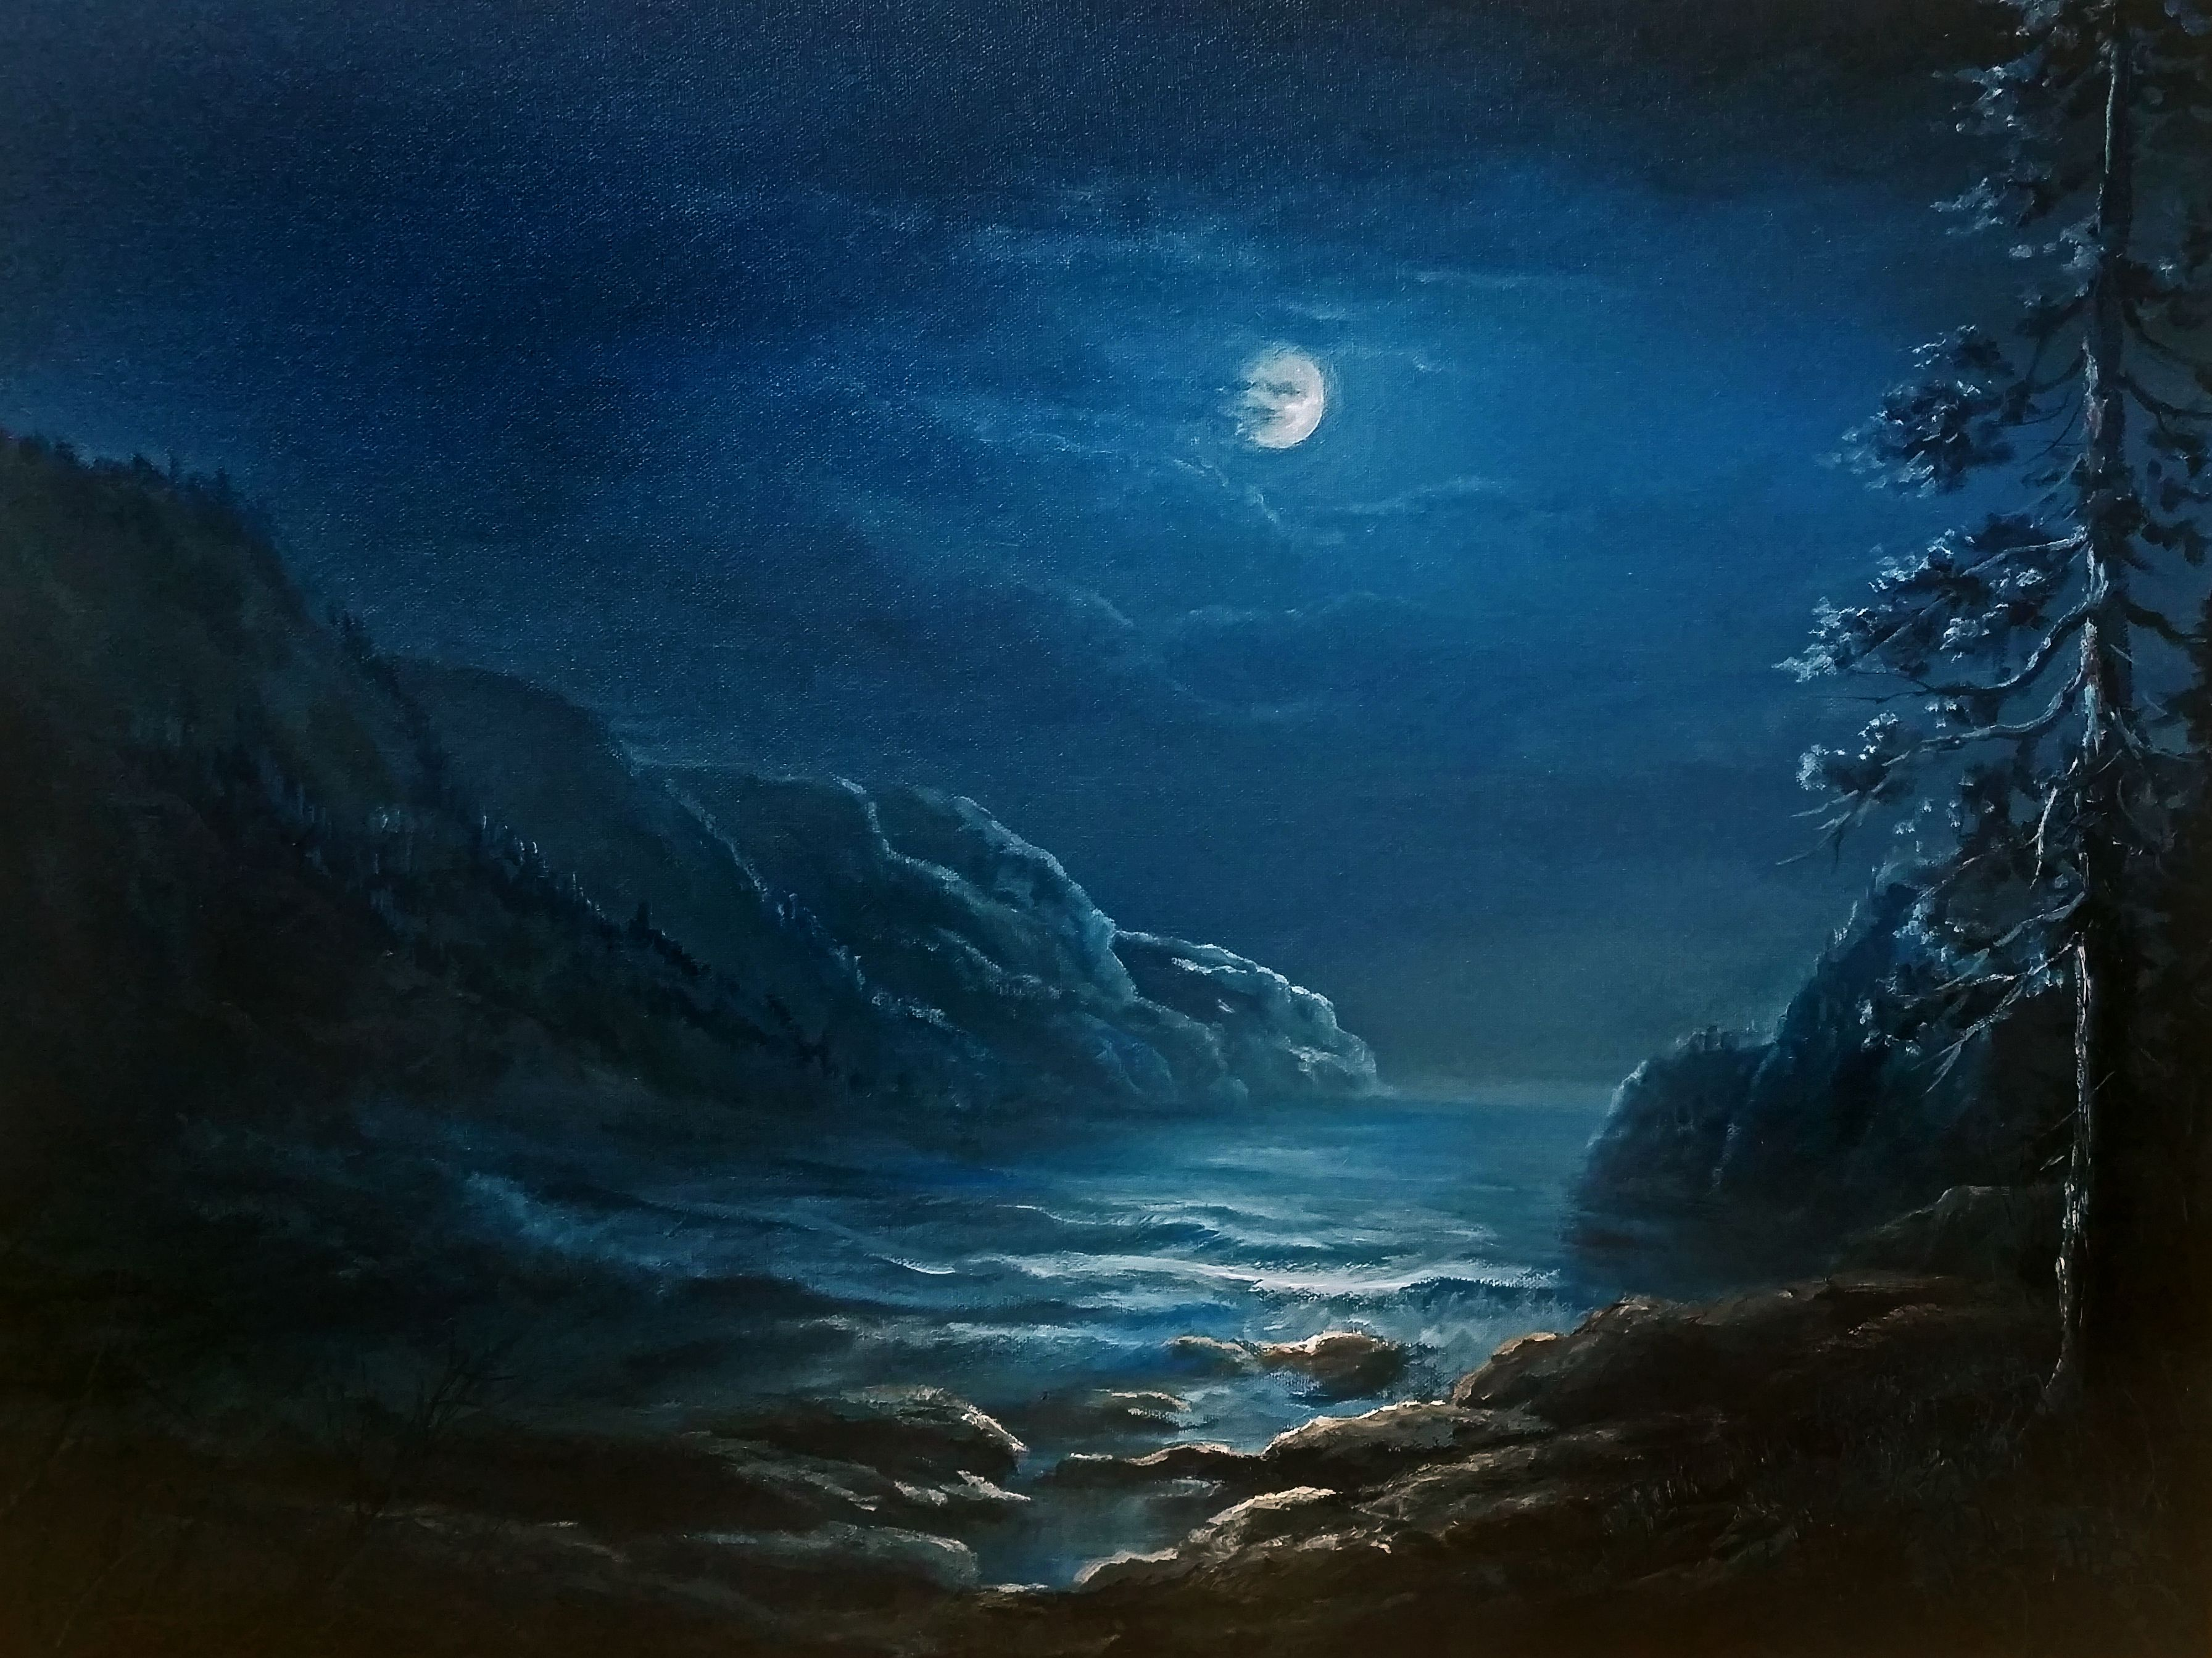 Moonlit Coastline Oil Painting By Kevin Hill Watch Short Oil Painting Lessons On Youtube Kevi Moonlight Painting Kevin Hill Paintings Oil Painting Landscape